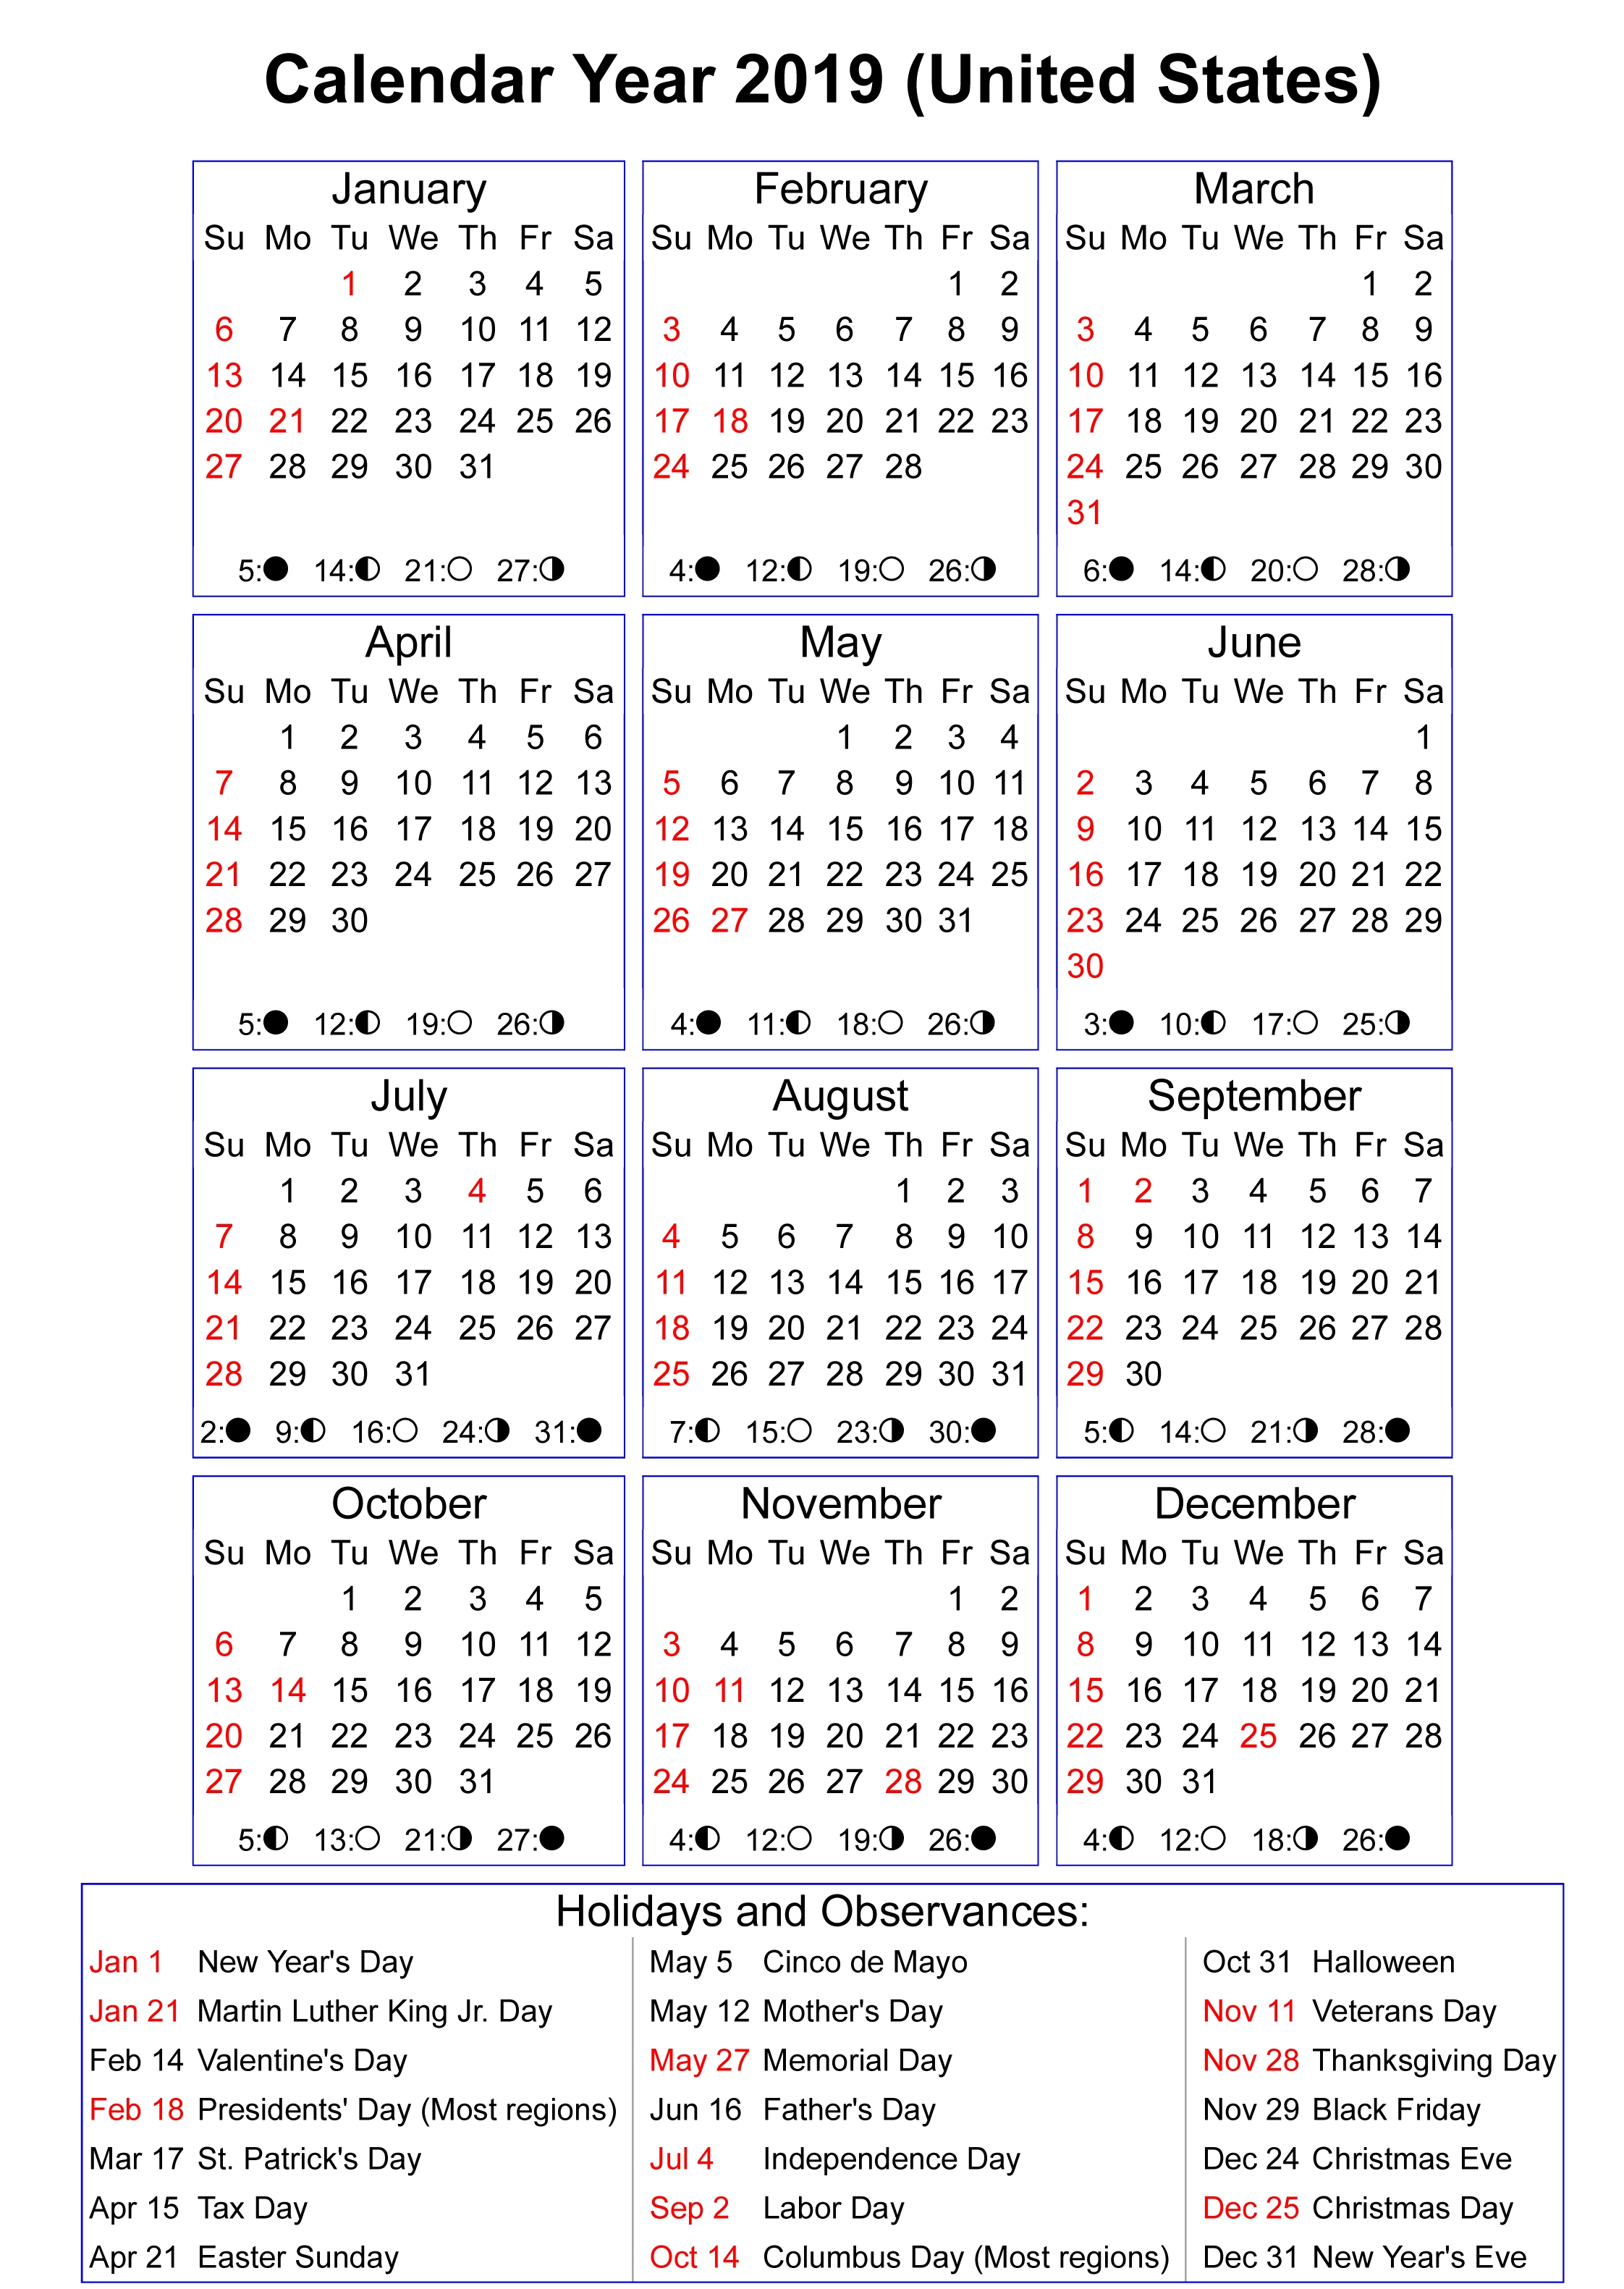 Moon Phases Calendar 2019 With Holidays | Calendar 2019 In 2019 Calendar Year 2019 United States